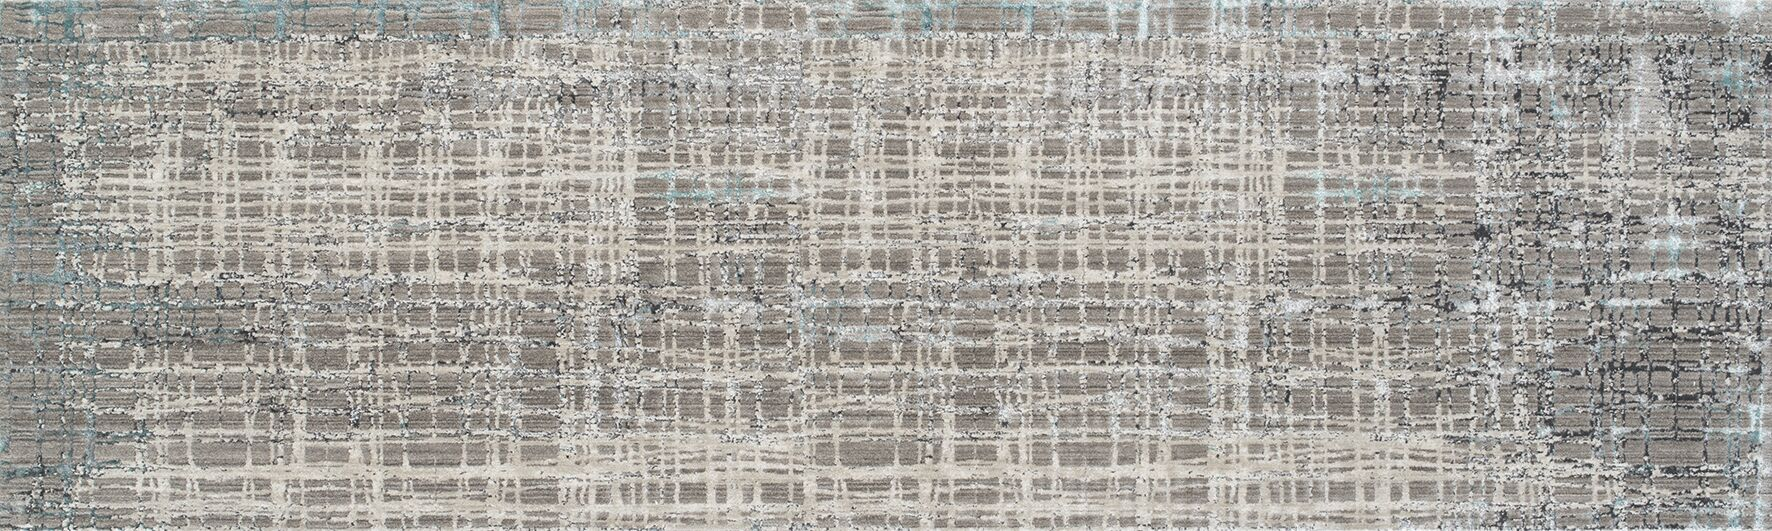 Grable Transitional Gray Area Rug Rug Size: Runner 2'6